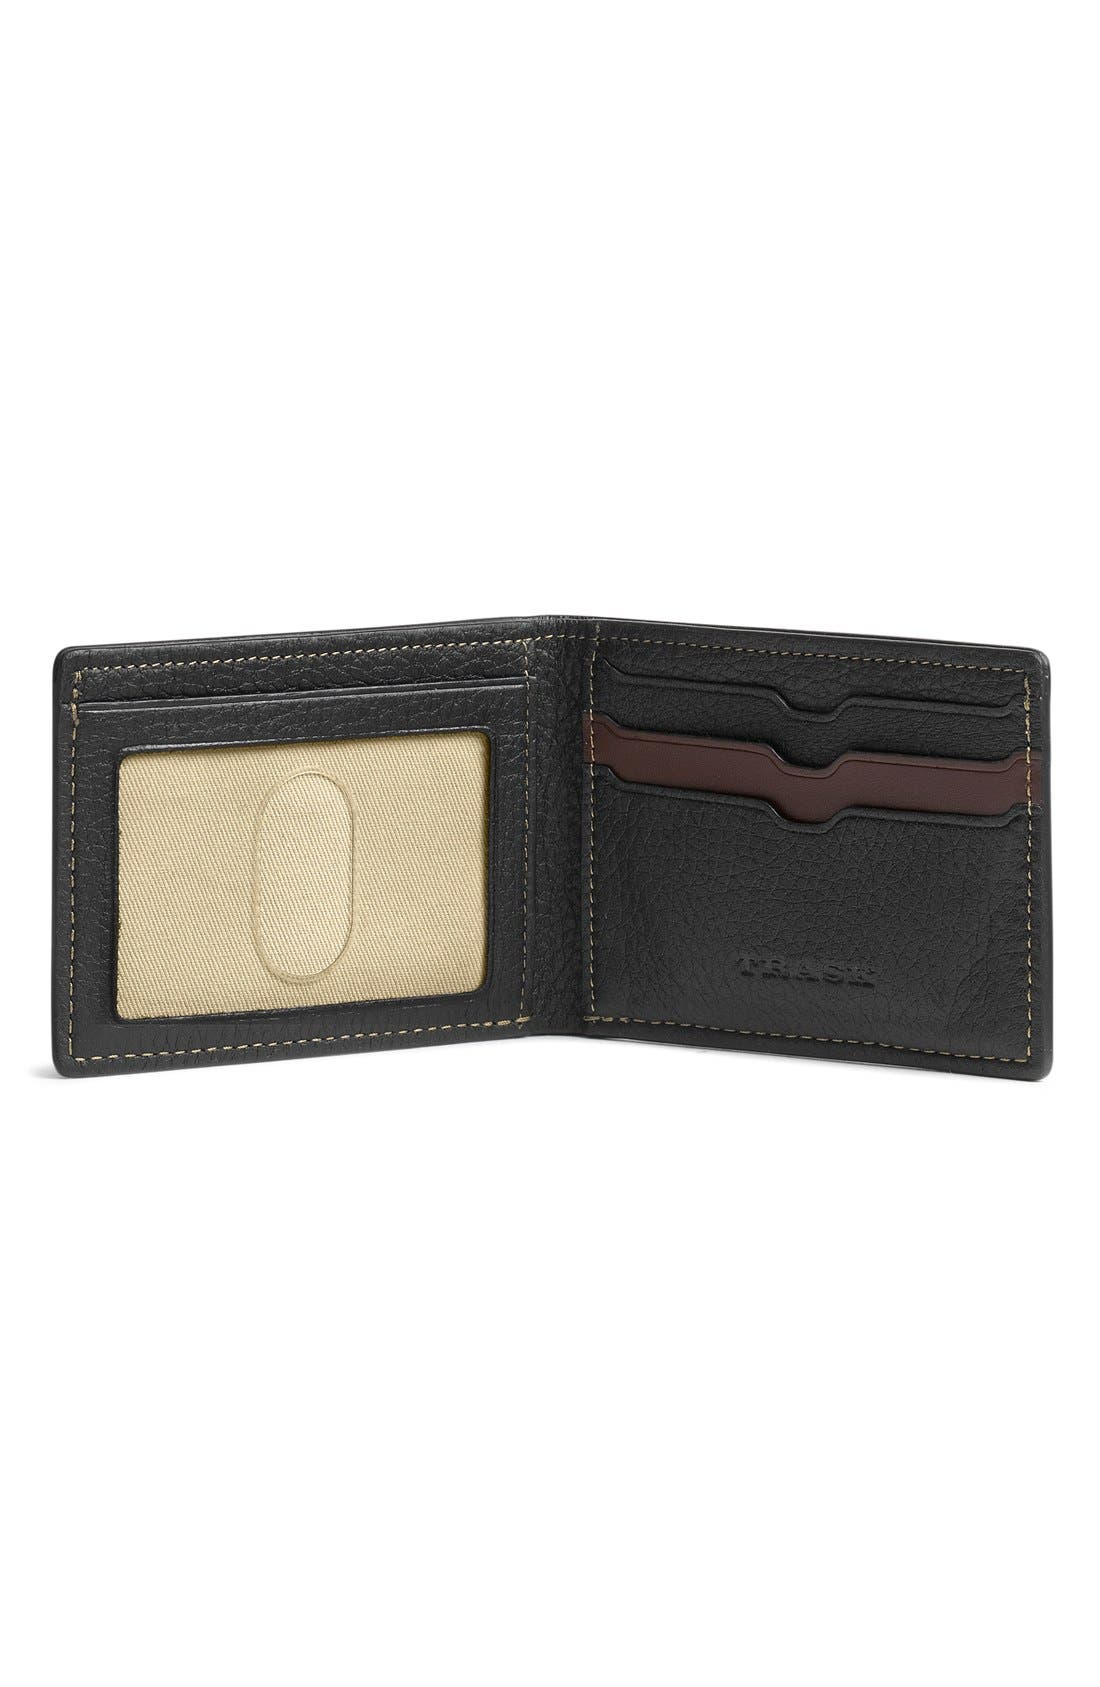 'Jackson' Super Slim Leather Wallet,                             Alternate thumbnail 6, color,                             BLACK